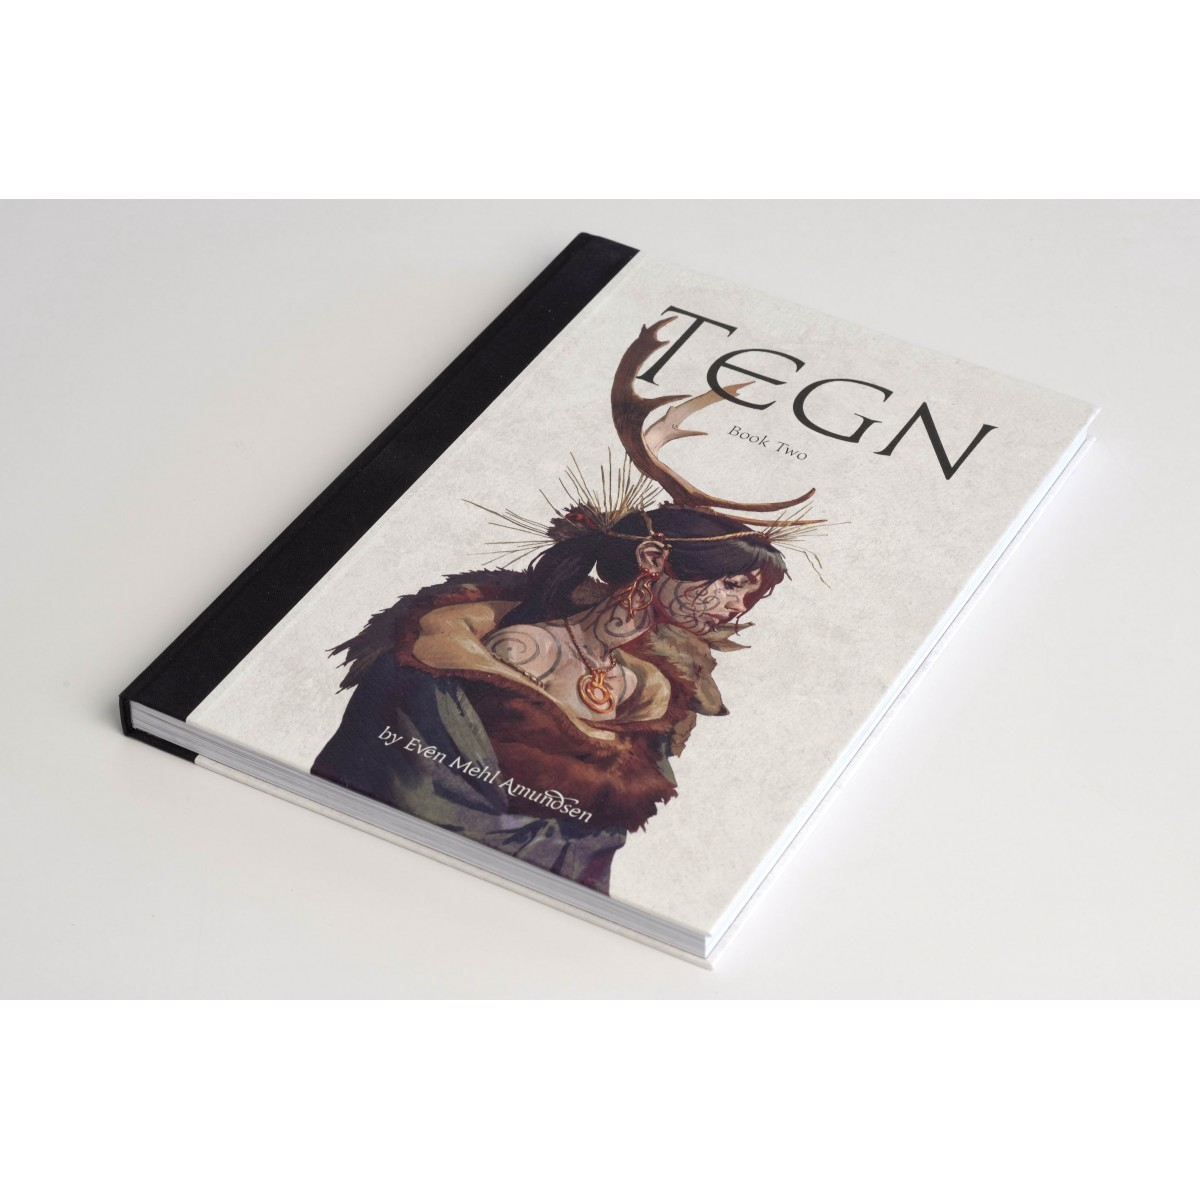 TEGN: Book Two - Even Mehl Amundsen